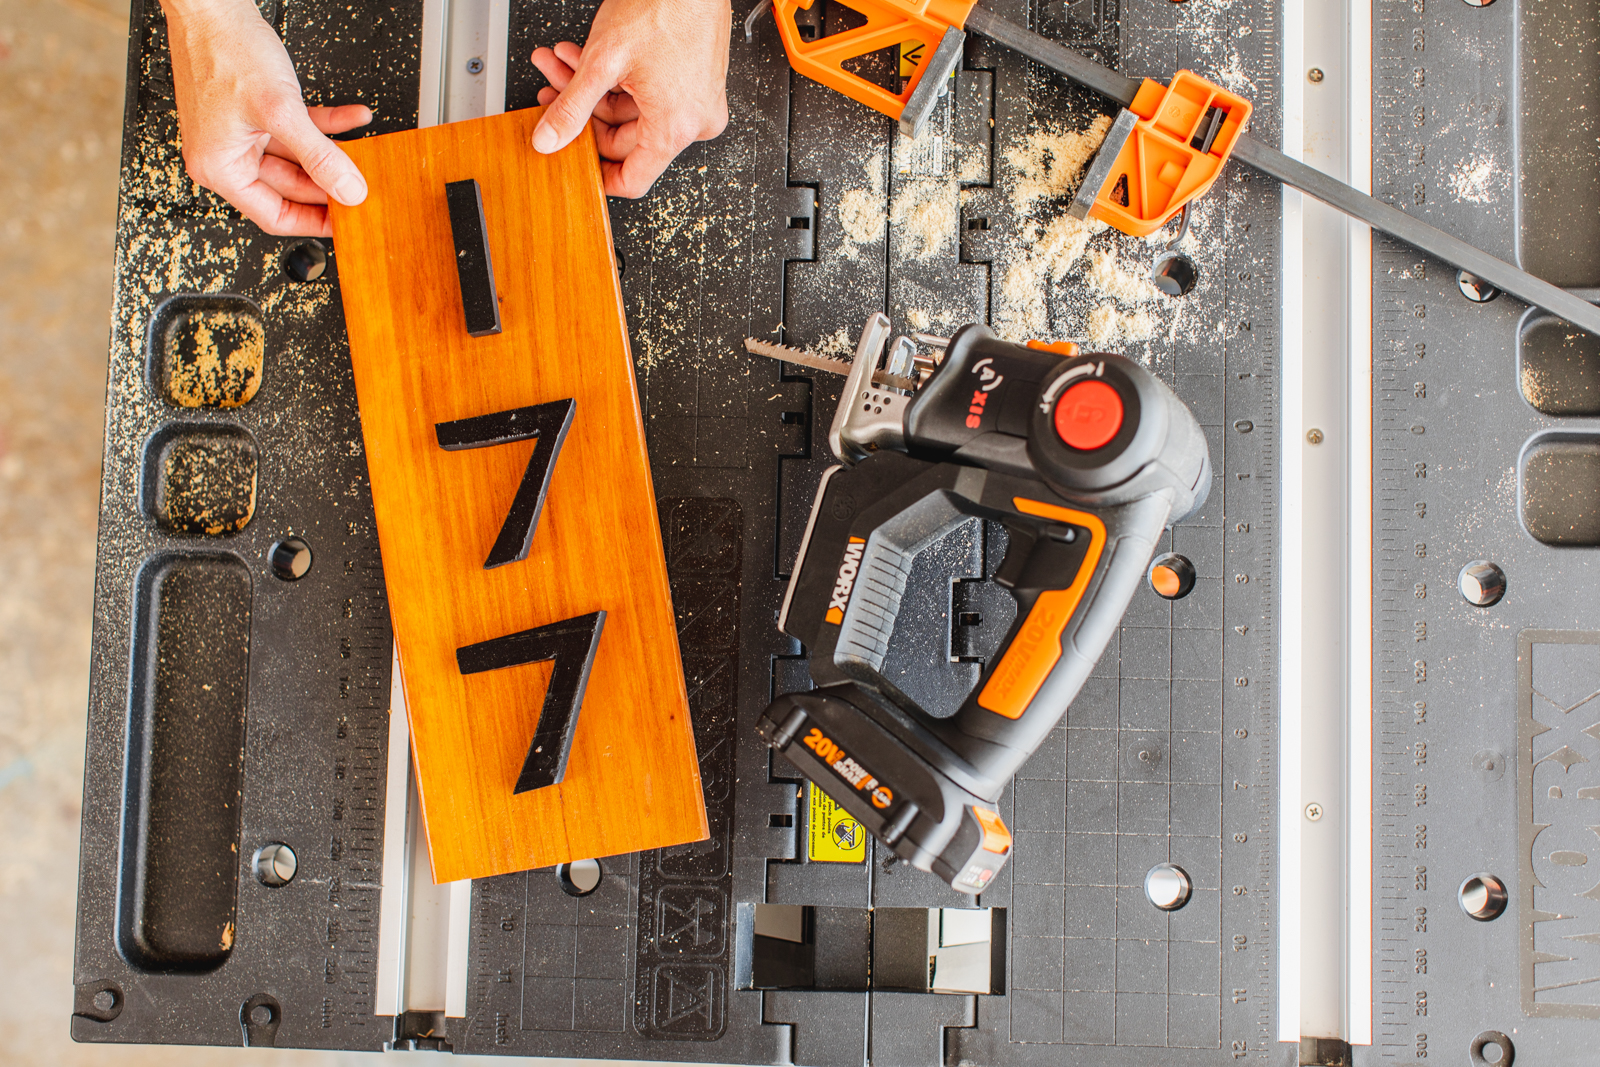 DIY House Numbers, Which Saw For Which Project?